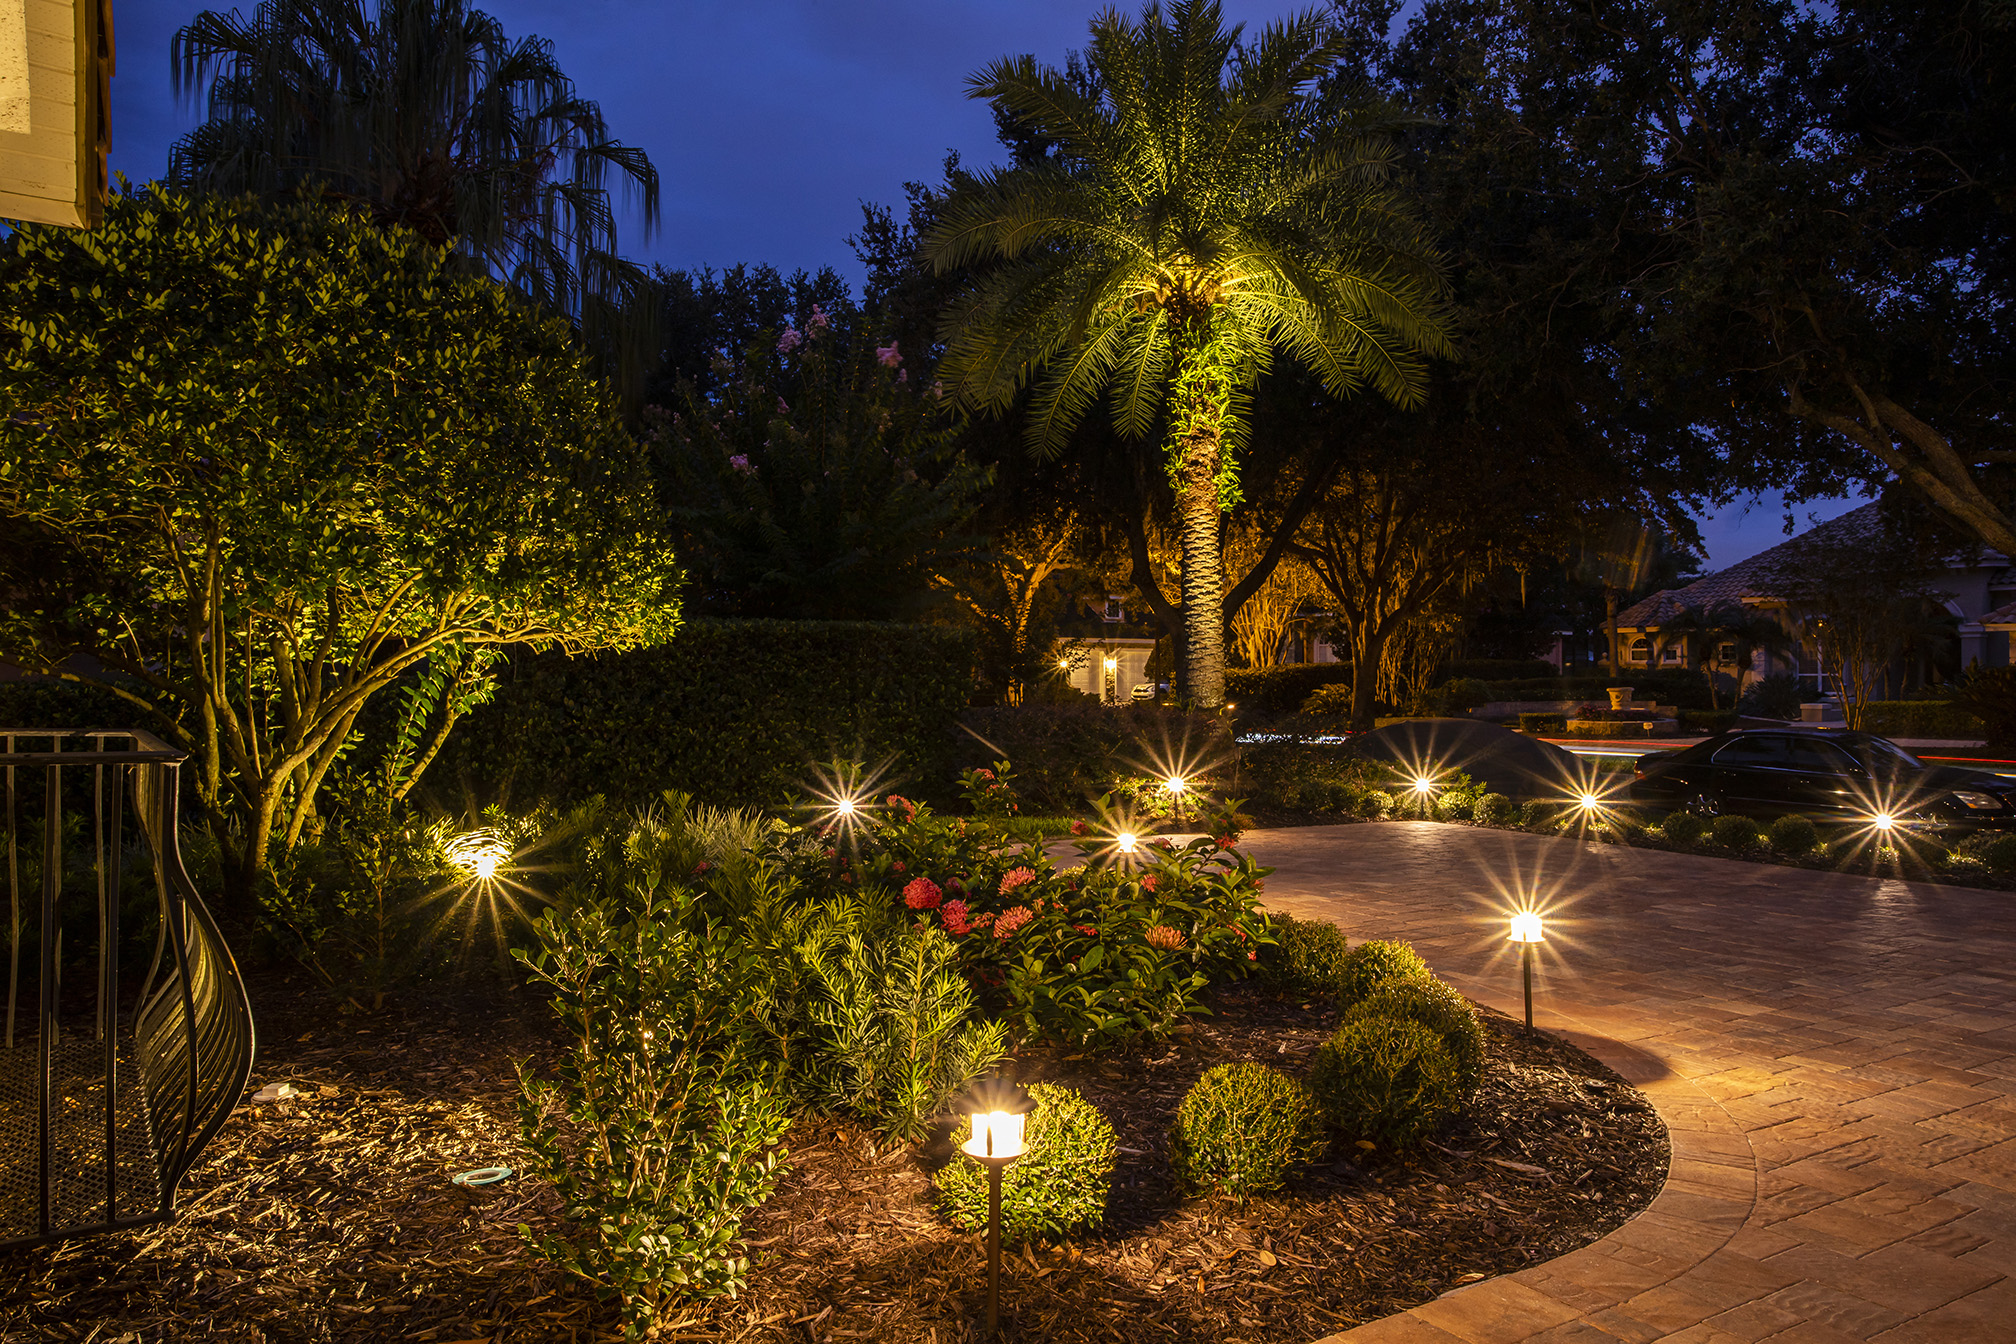 Landscaping lighting for a pathway